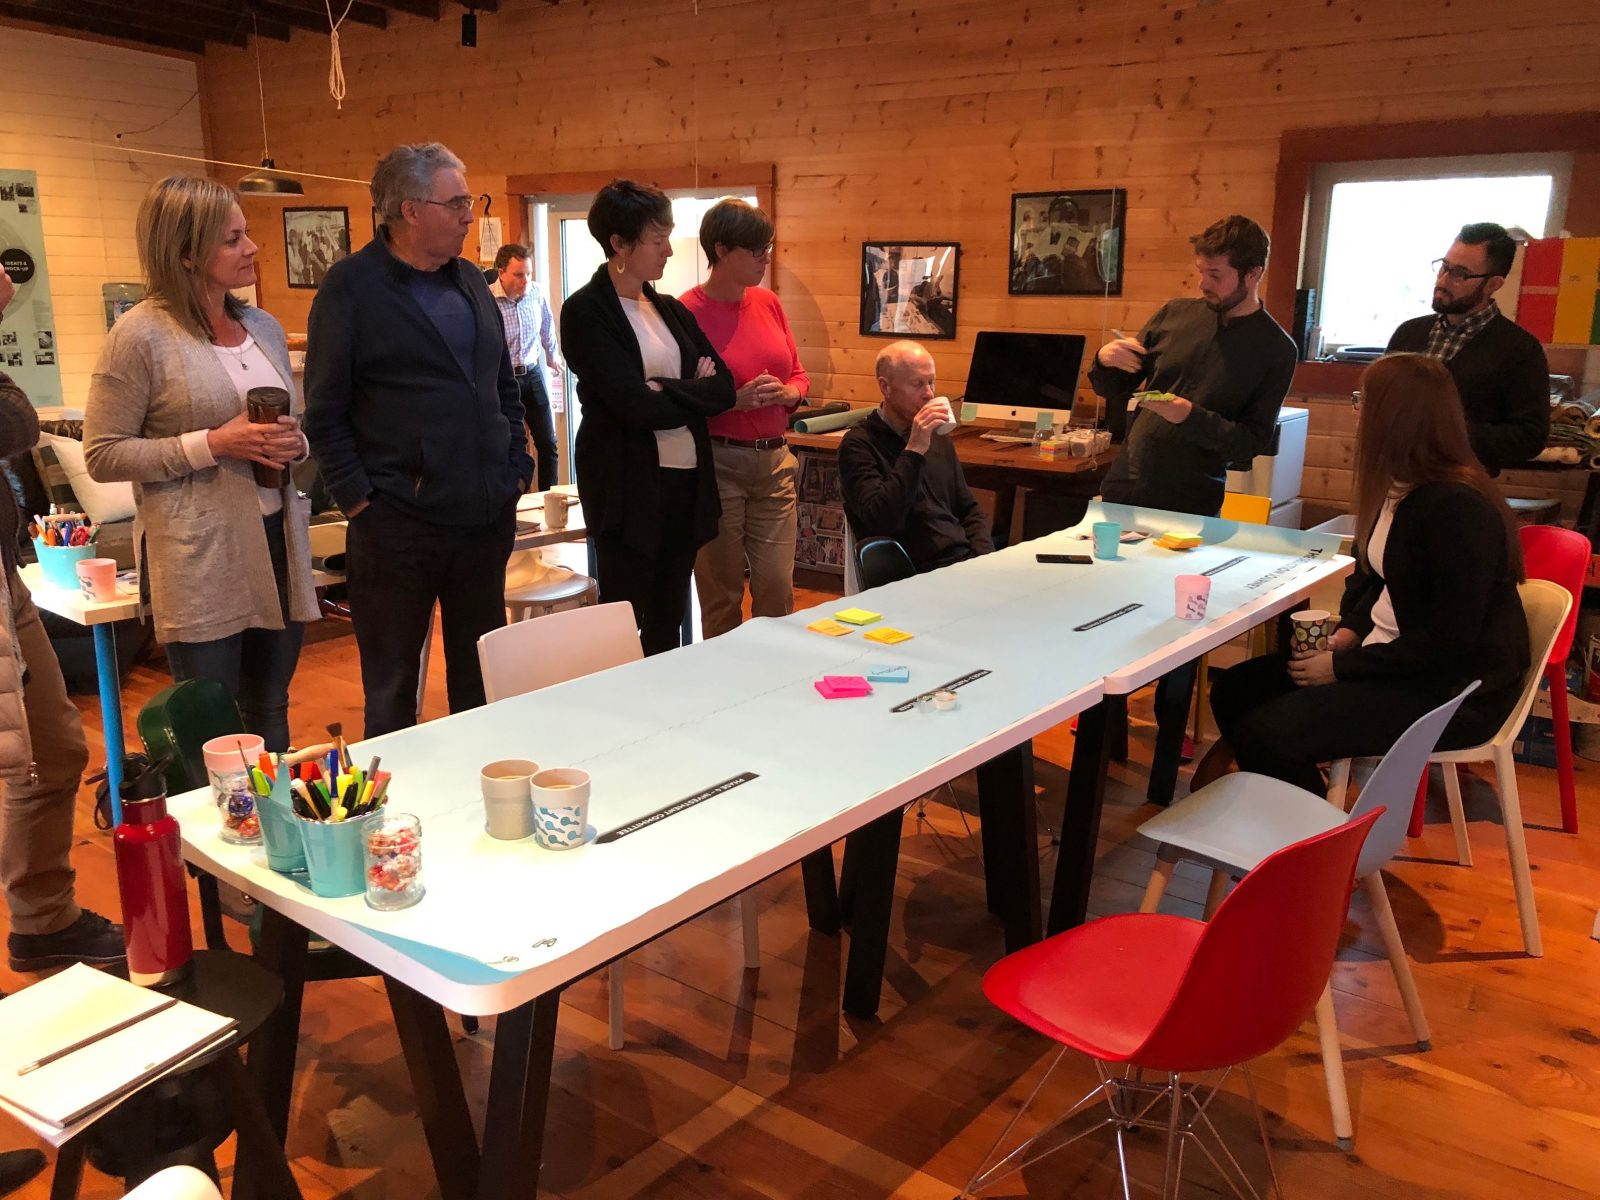 Eight adults sit and stand around a long table laid out with paper, post-its and pens.